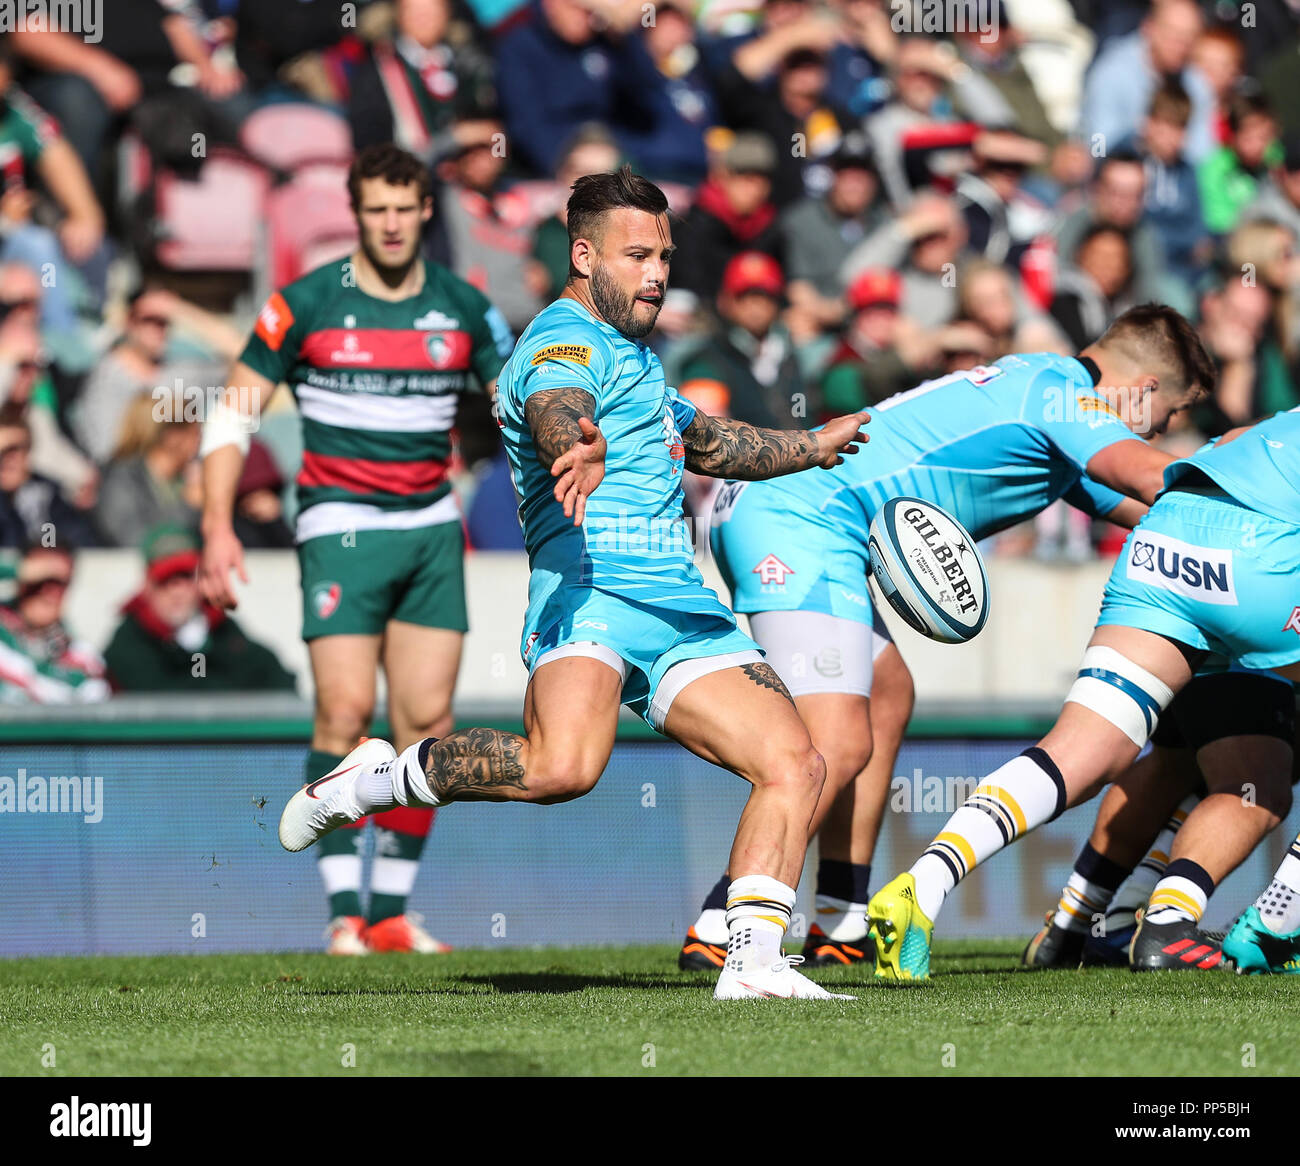 Leicester, UK. 23rd September, 2018. Premiership Rugby Union.     Leicester Tigers v Worcester Warriors  rfc.          Francois Hougaard (Worcester Warriors) kicks for position during the Gallagher Premiership game played at Welford Road Stadium, Leicester, England. Credit: Phil Hutchinson/Alamy Live News - Stock Image